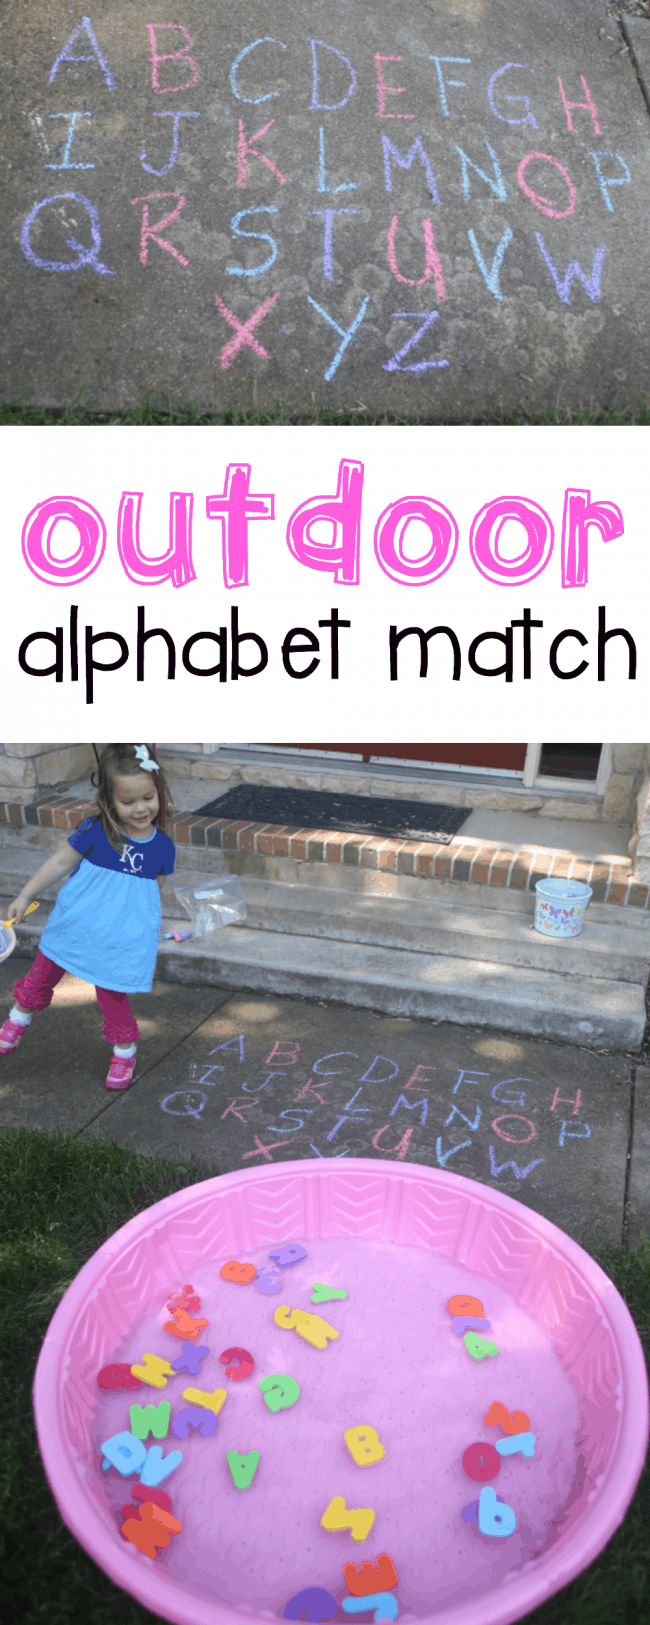 Outdoor Alphabet Match for Toddlers - I Can Teach My Child!